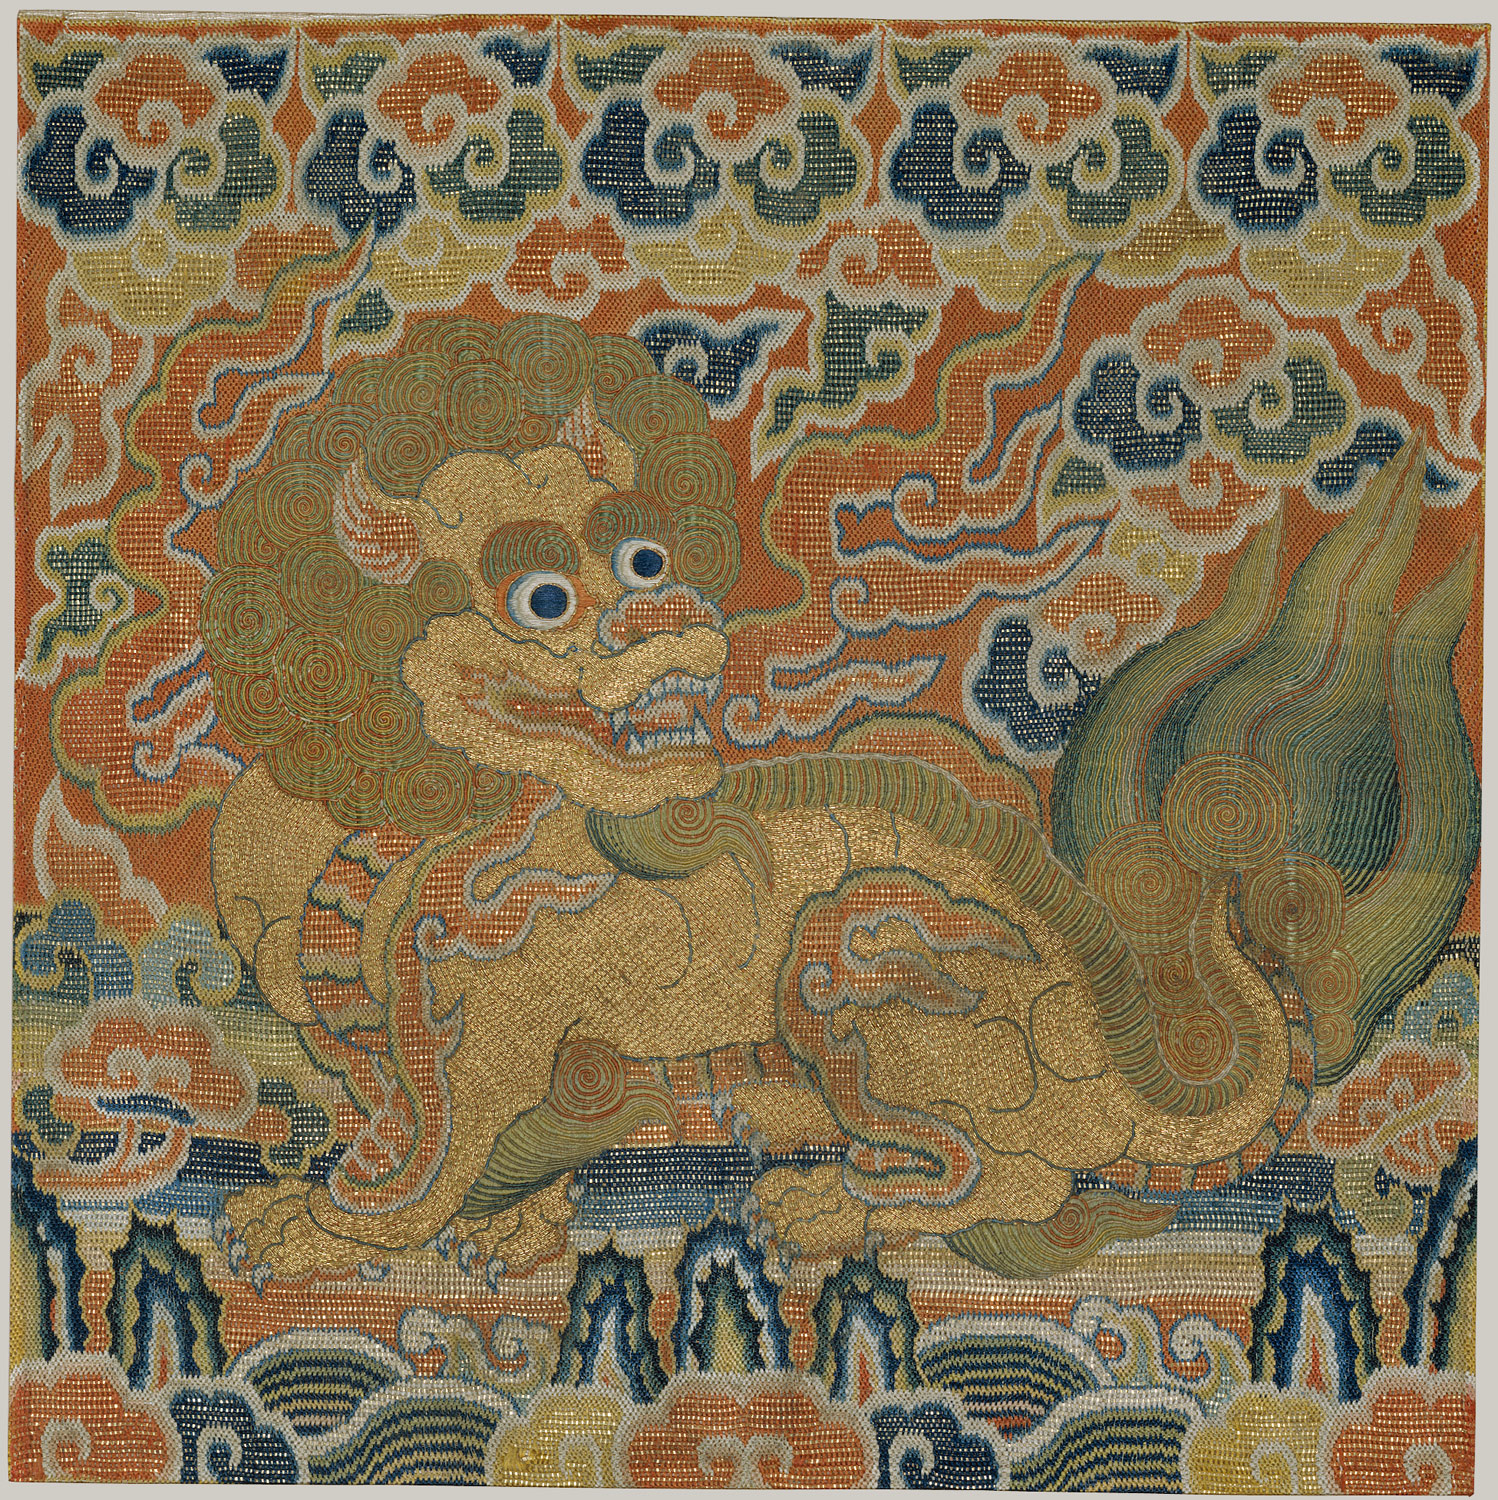 A lion badge (2nd military rank) from the 15th century, Ming dynasty. In the collection of the Metropolitan Museum of Art.